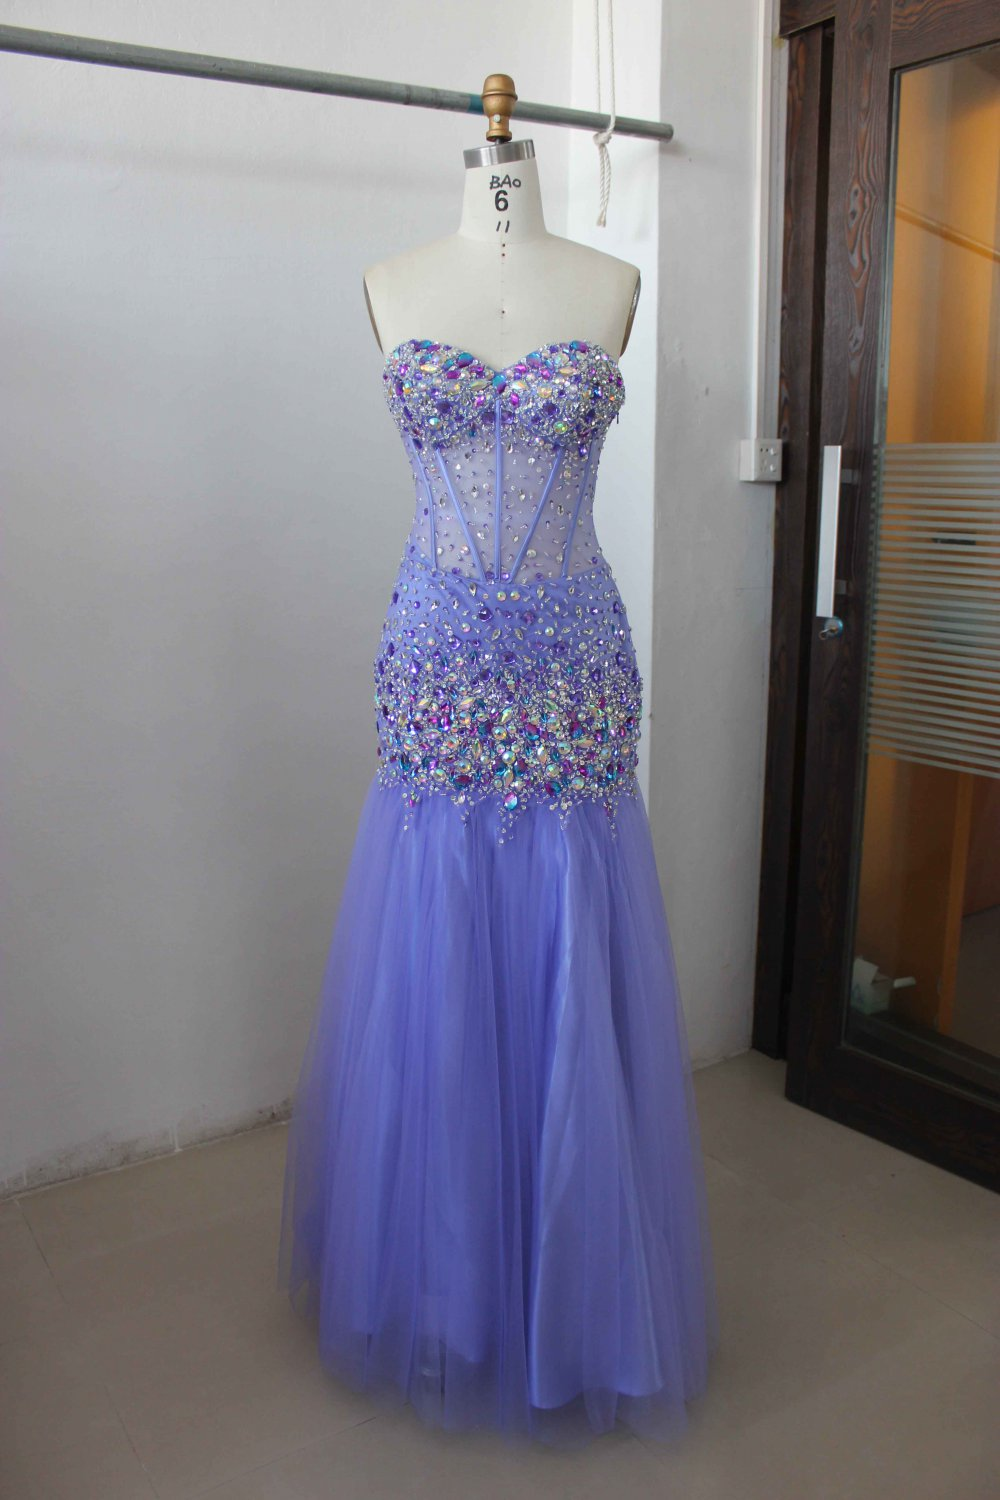 DP #HK1348 - x - Blue Prom Dresses, Corset Bodice Evening Gowns